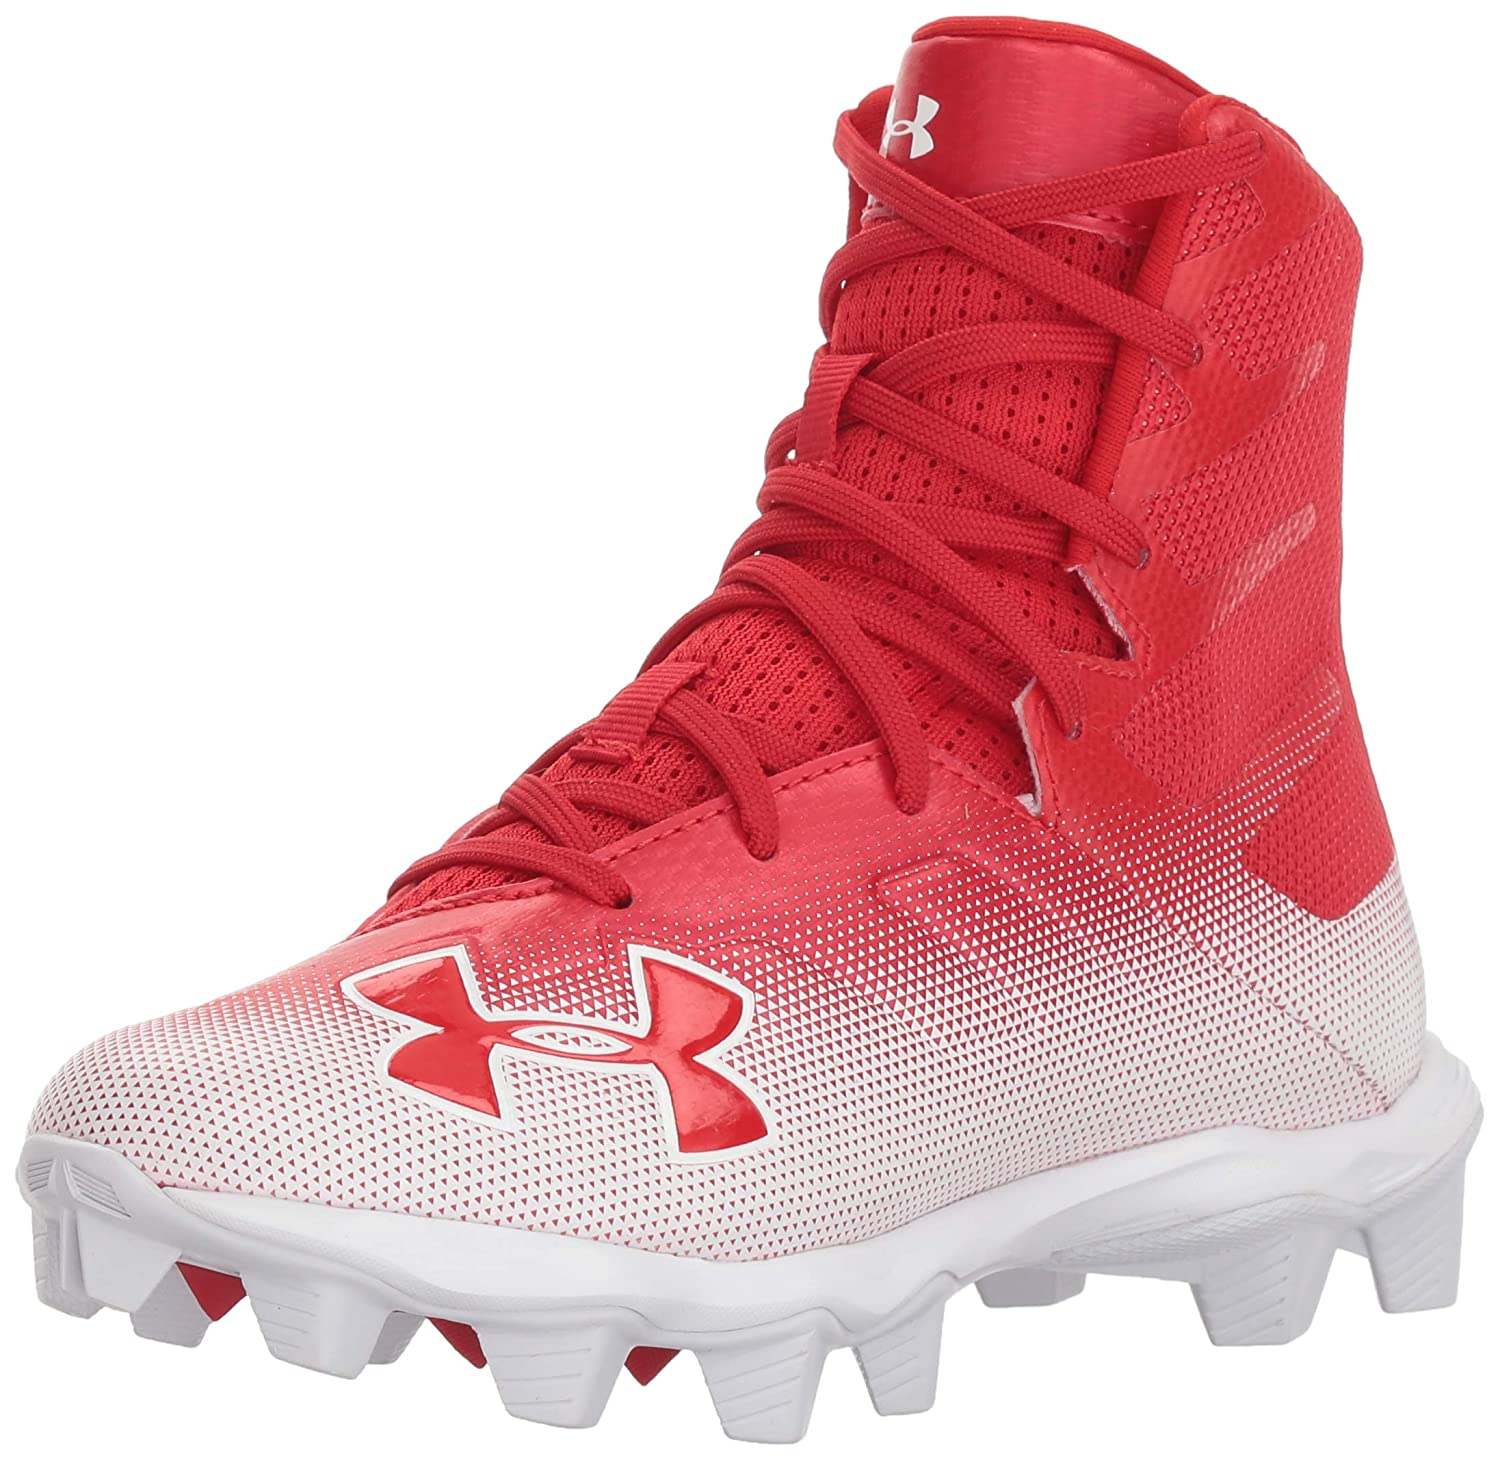 Under Armour Kids' Highlight Rm Jr. Football Schuhe,